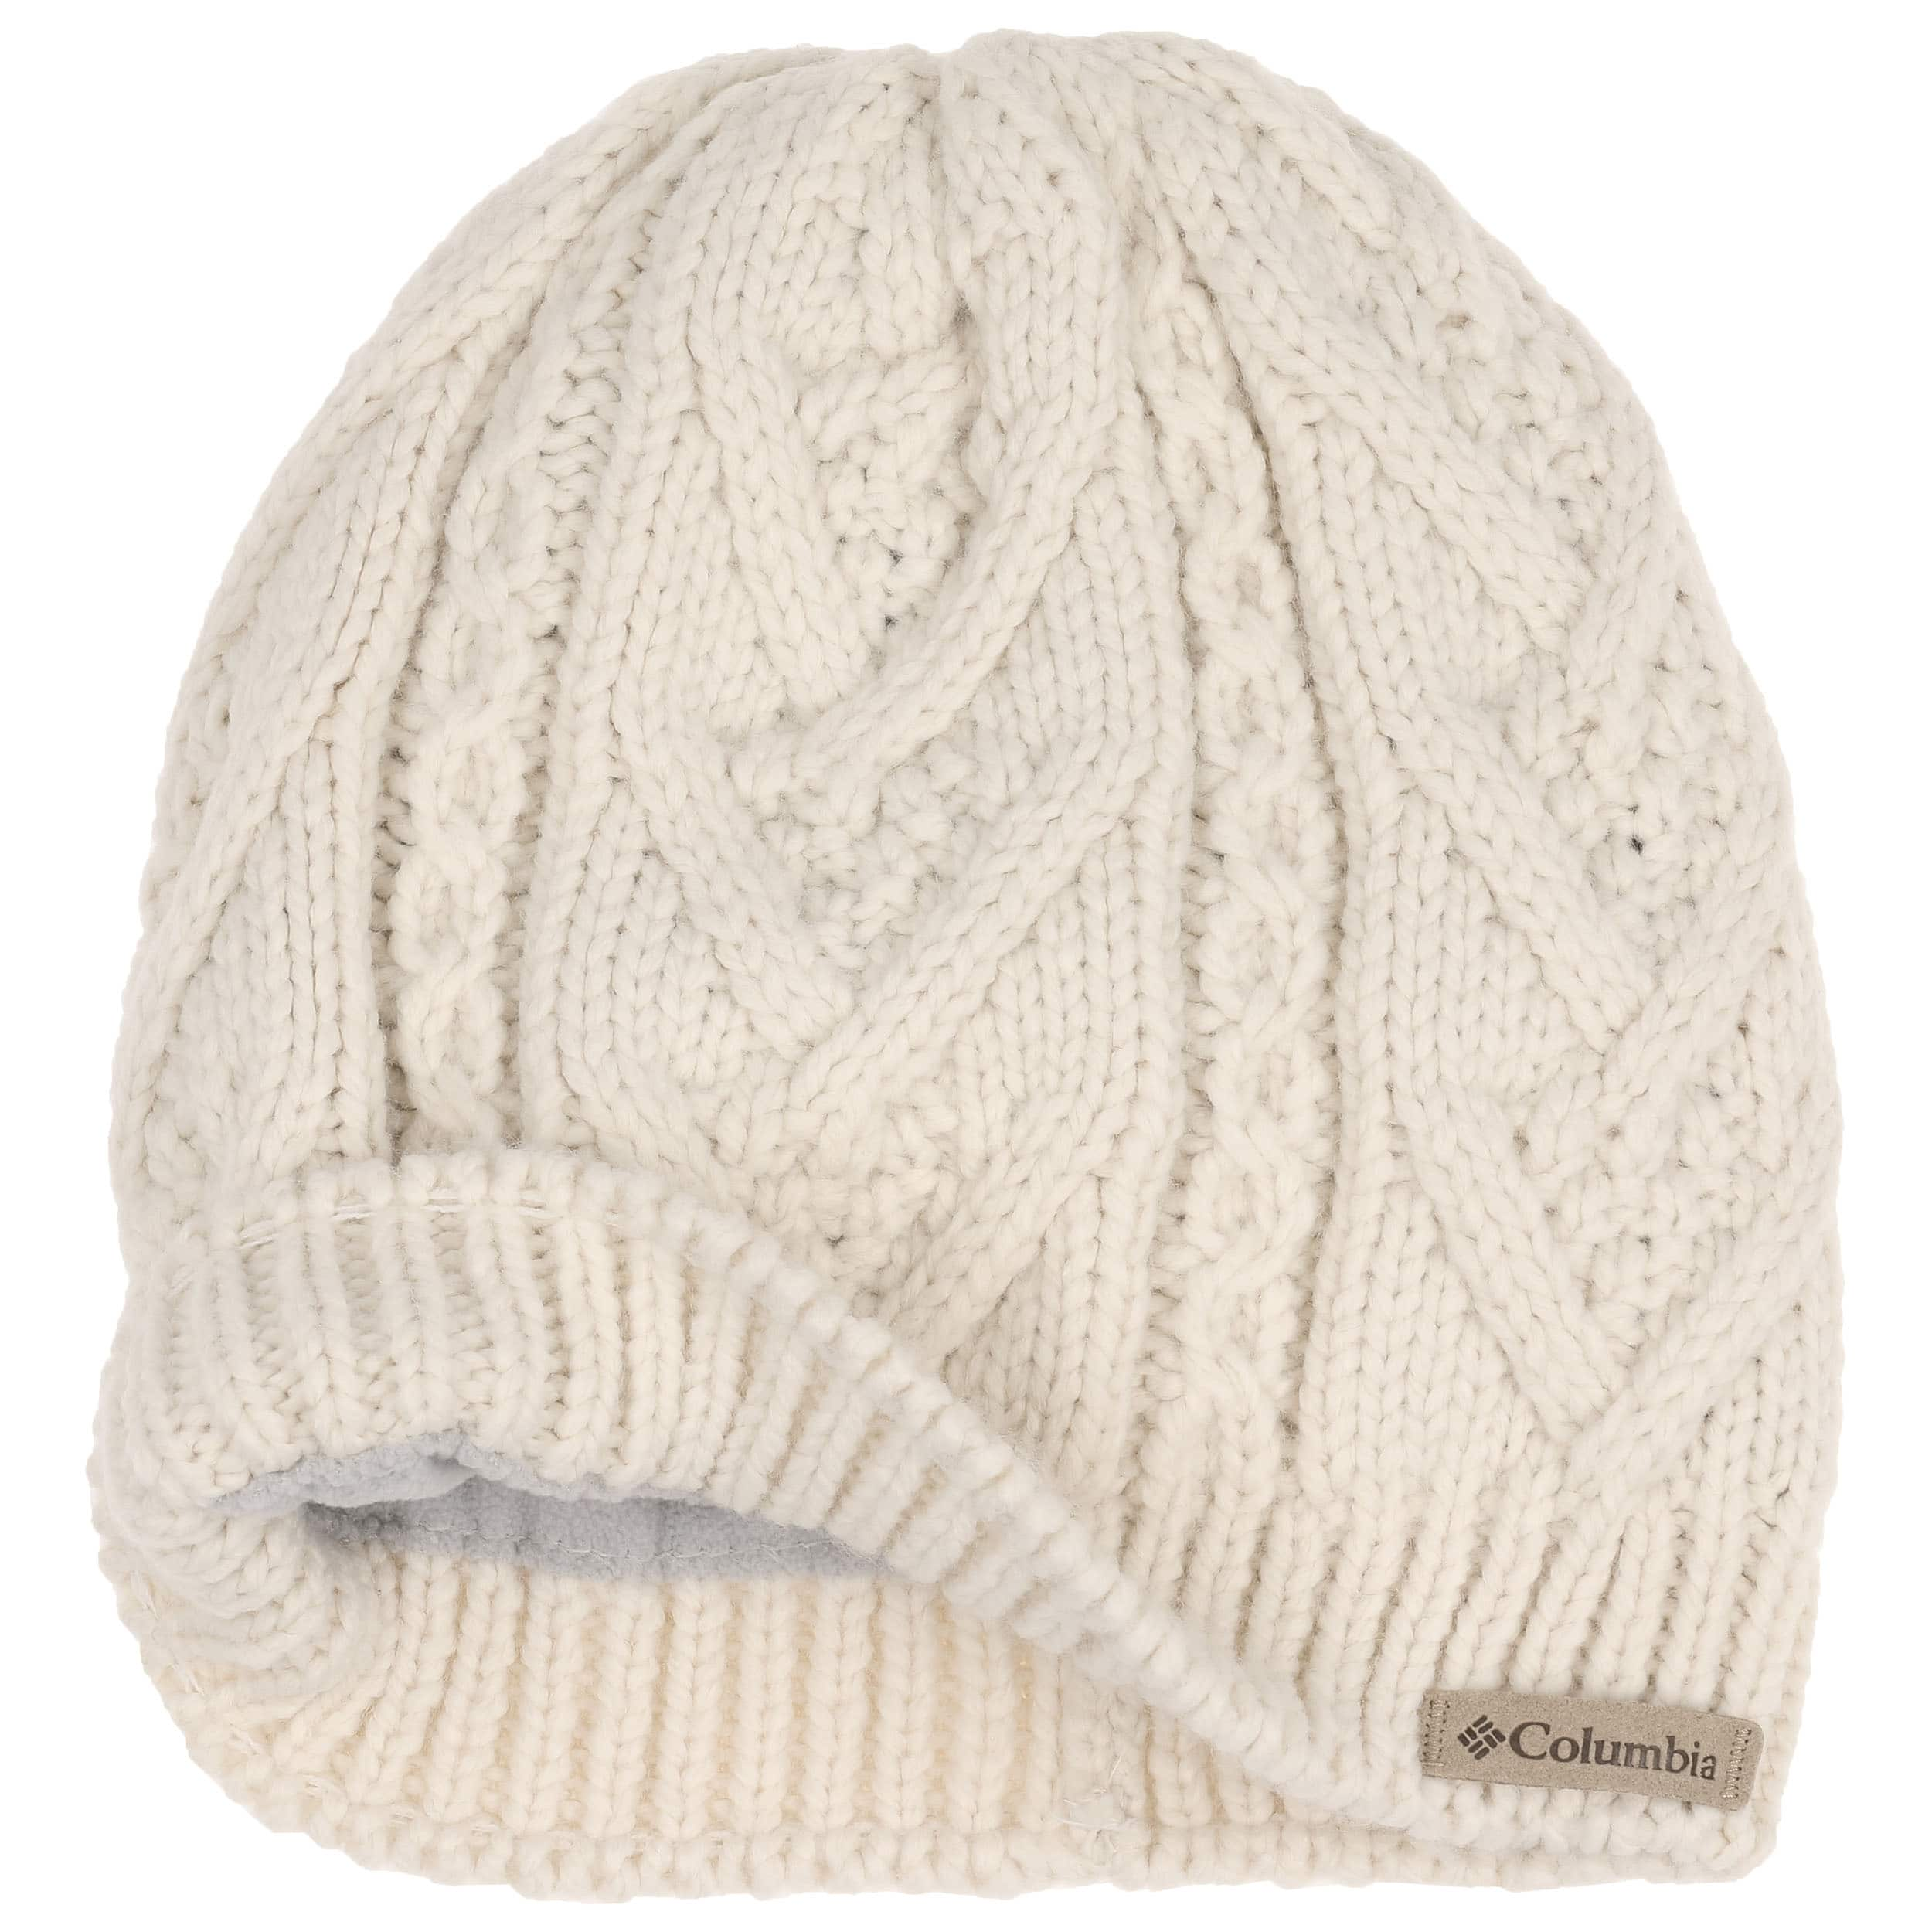 bc8052e25a0 Parallel Peak II Beanie by Columbia - cream white 1 ...